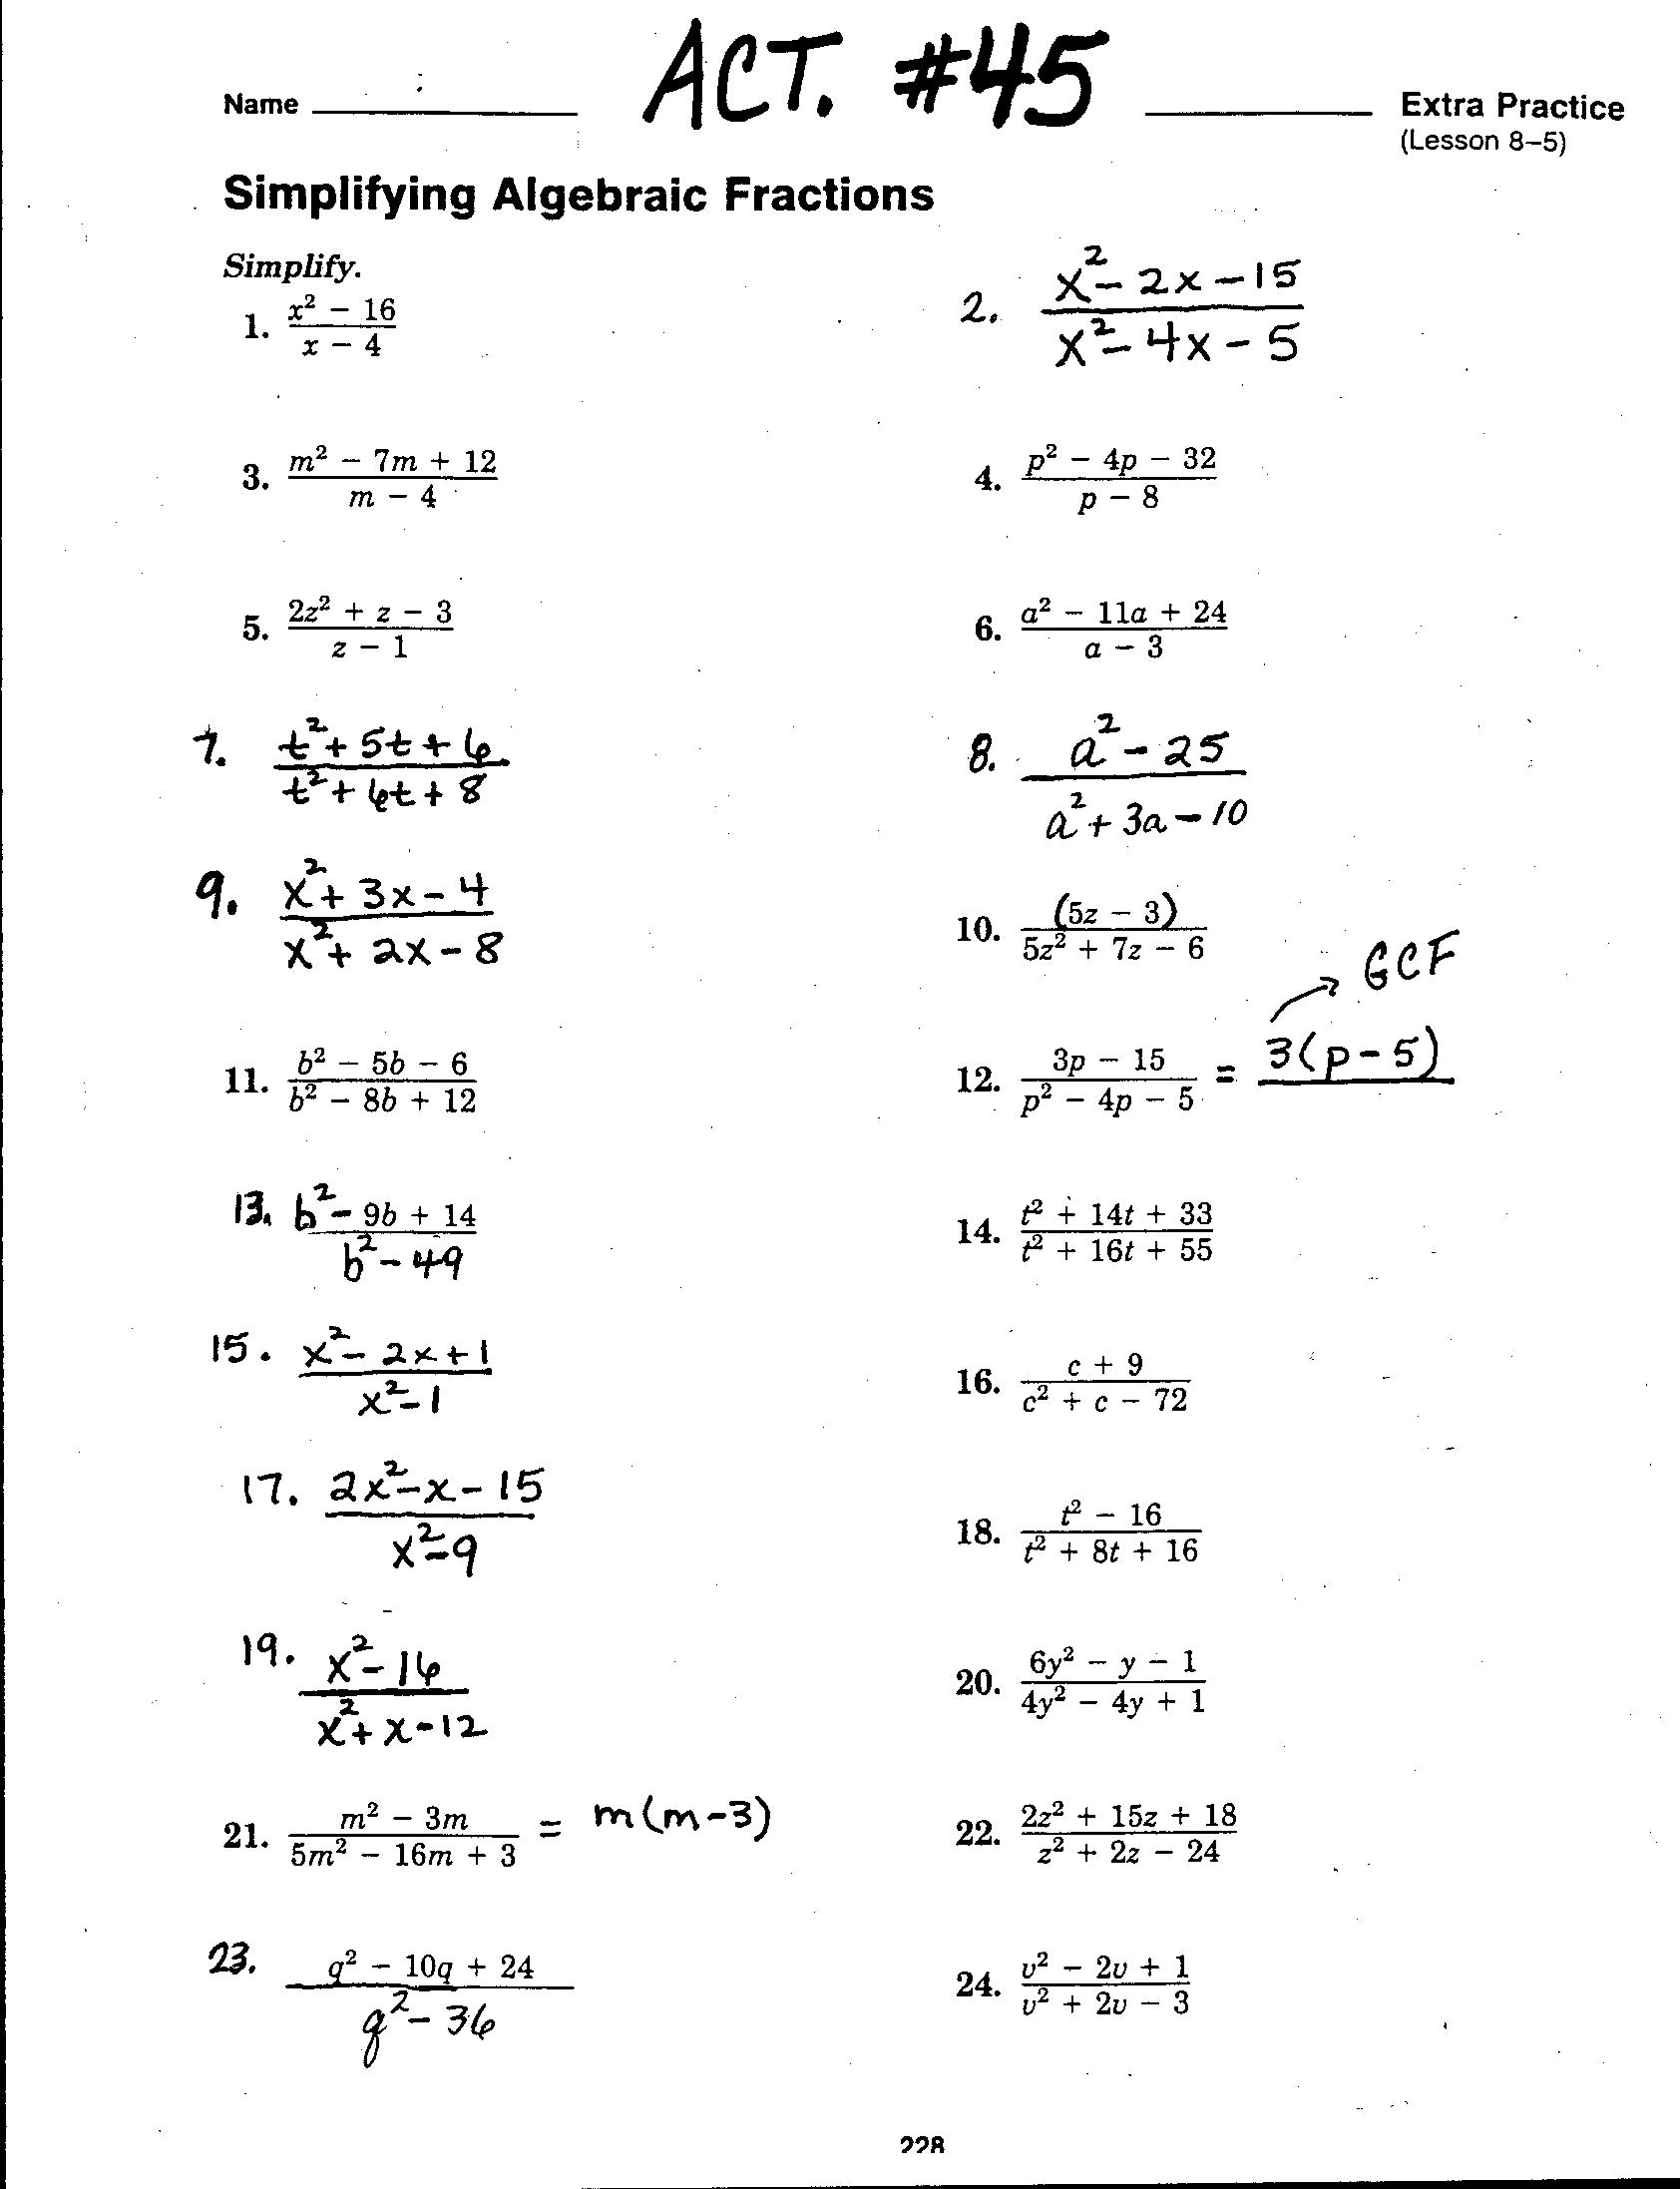 Simplify Rational Exponents Worksheet – Simplifying Rational Expressions Worksheet